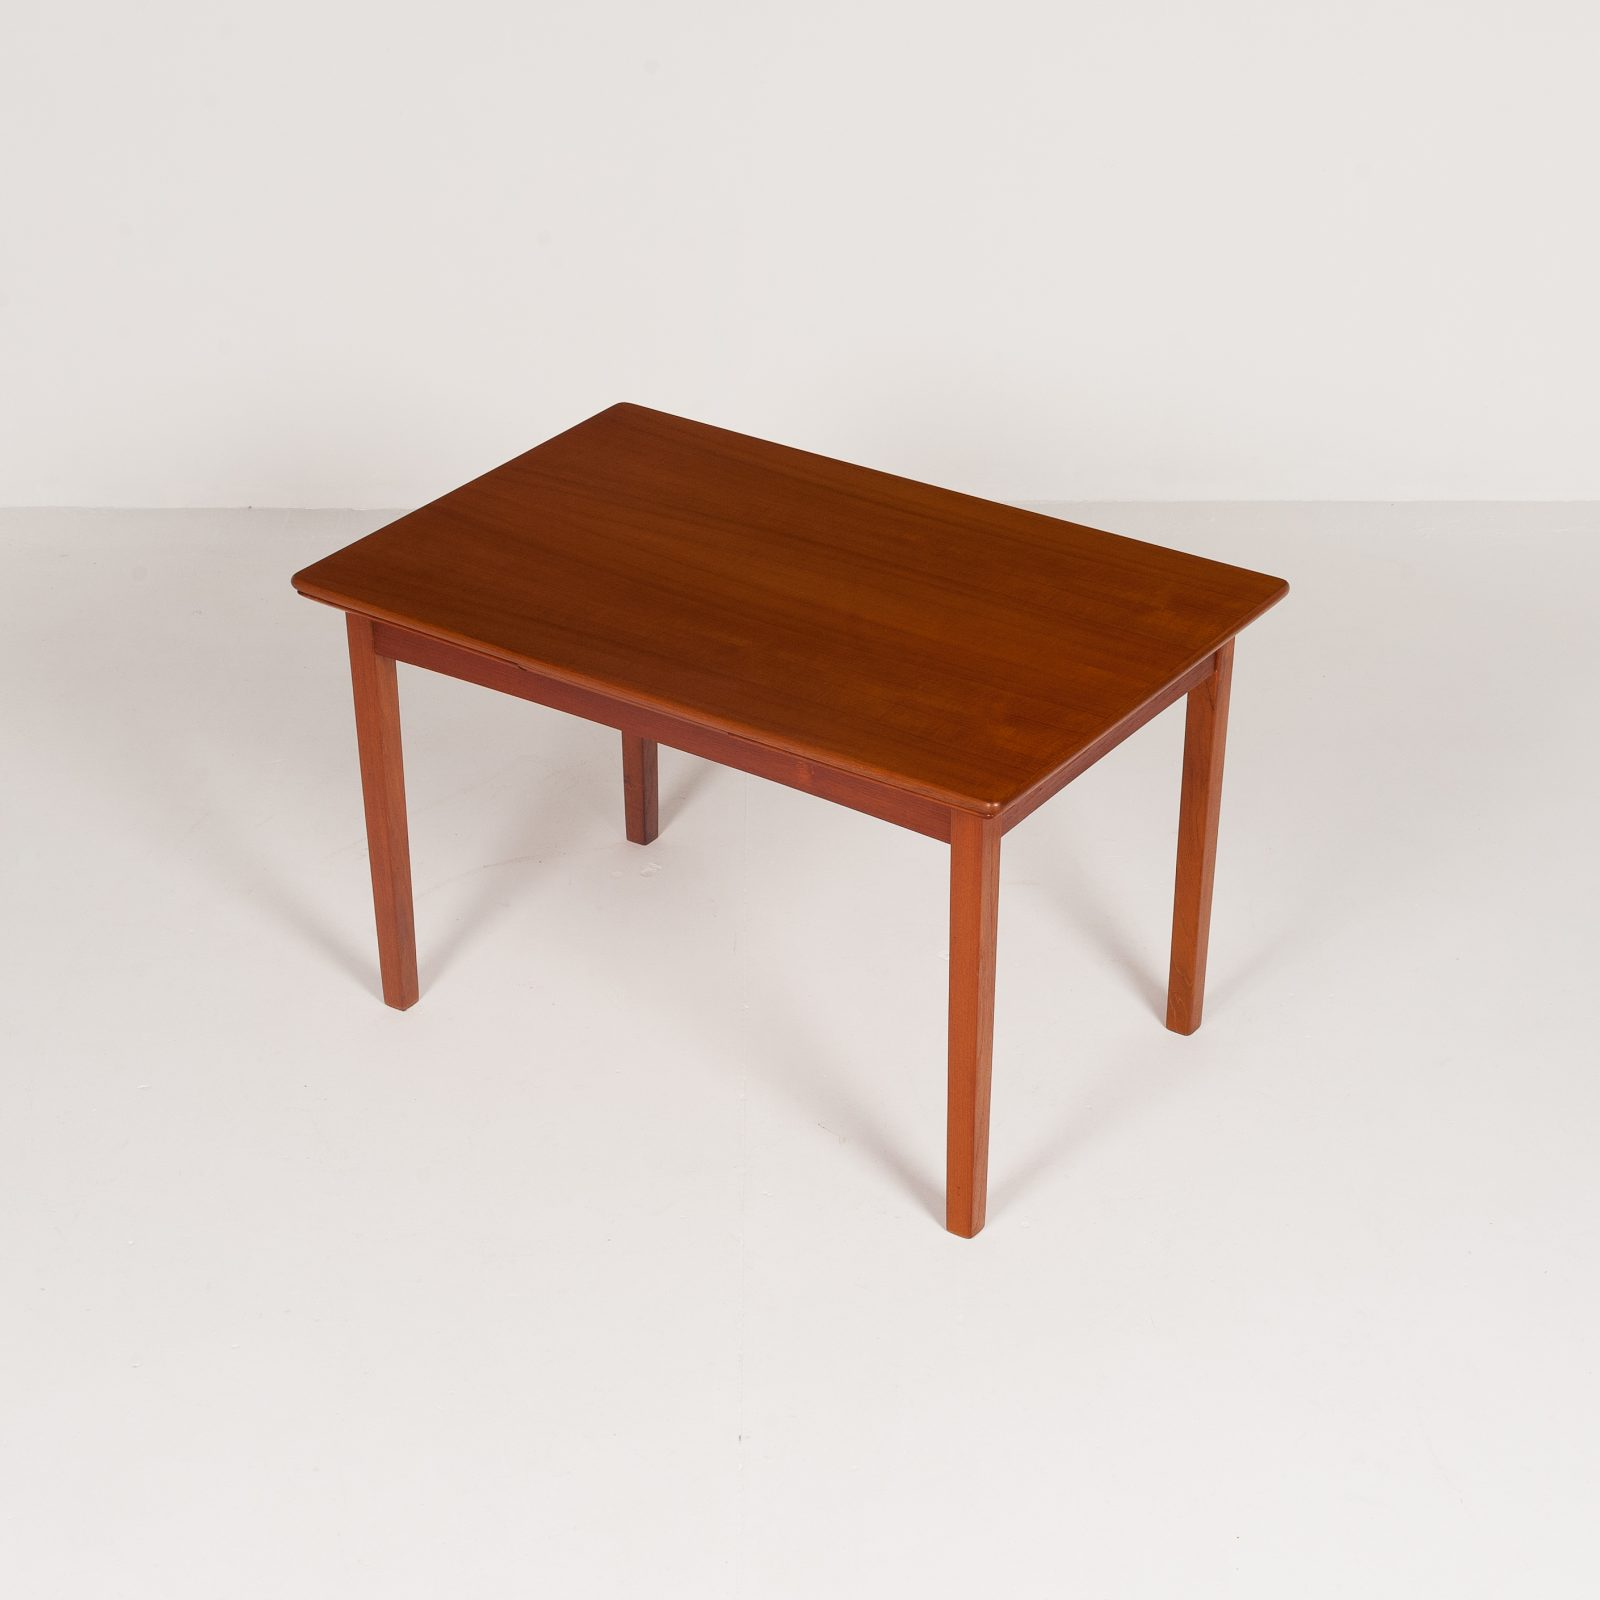 Rectangular Extension Dining Table In Teak With Square Legs, 1960s, Denmark6004